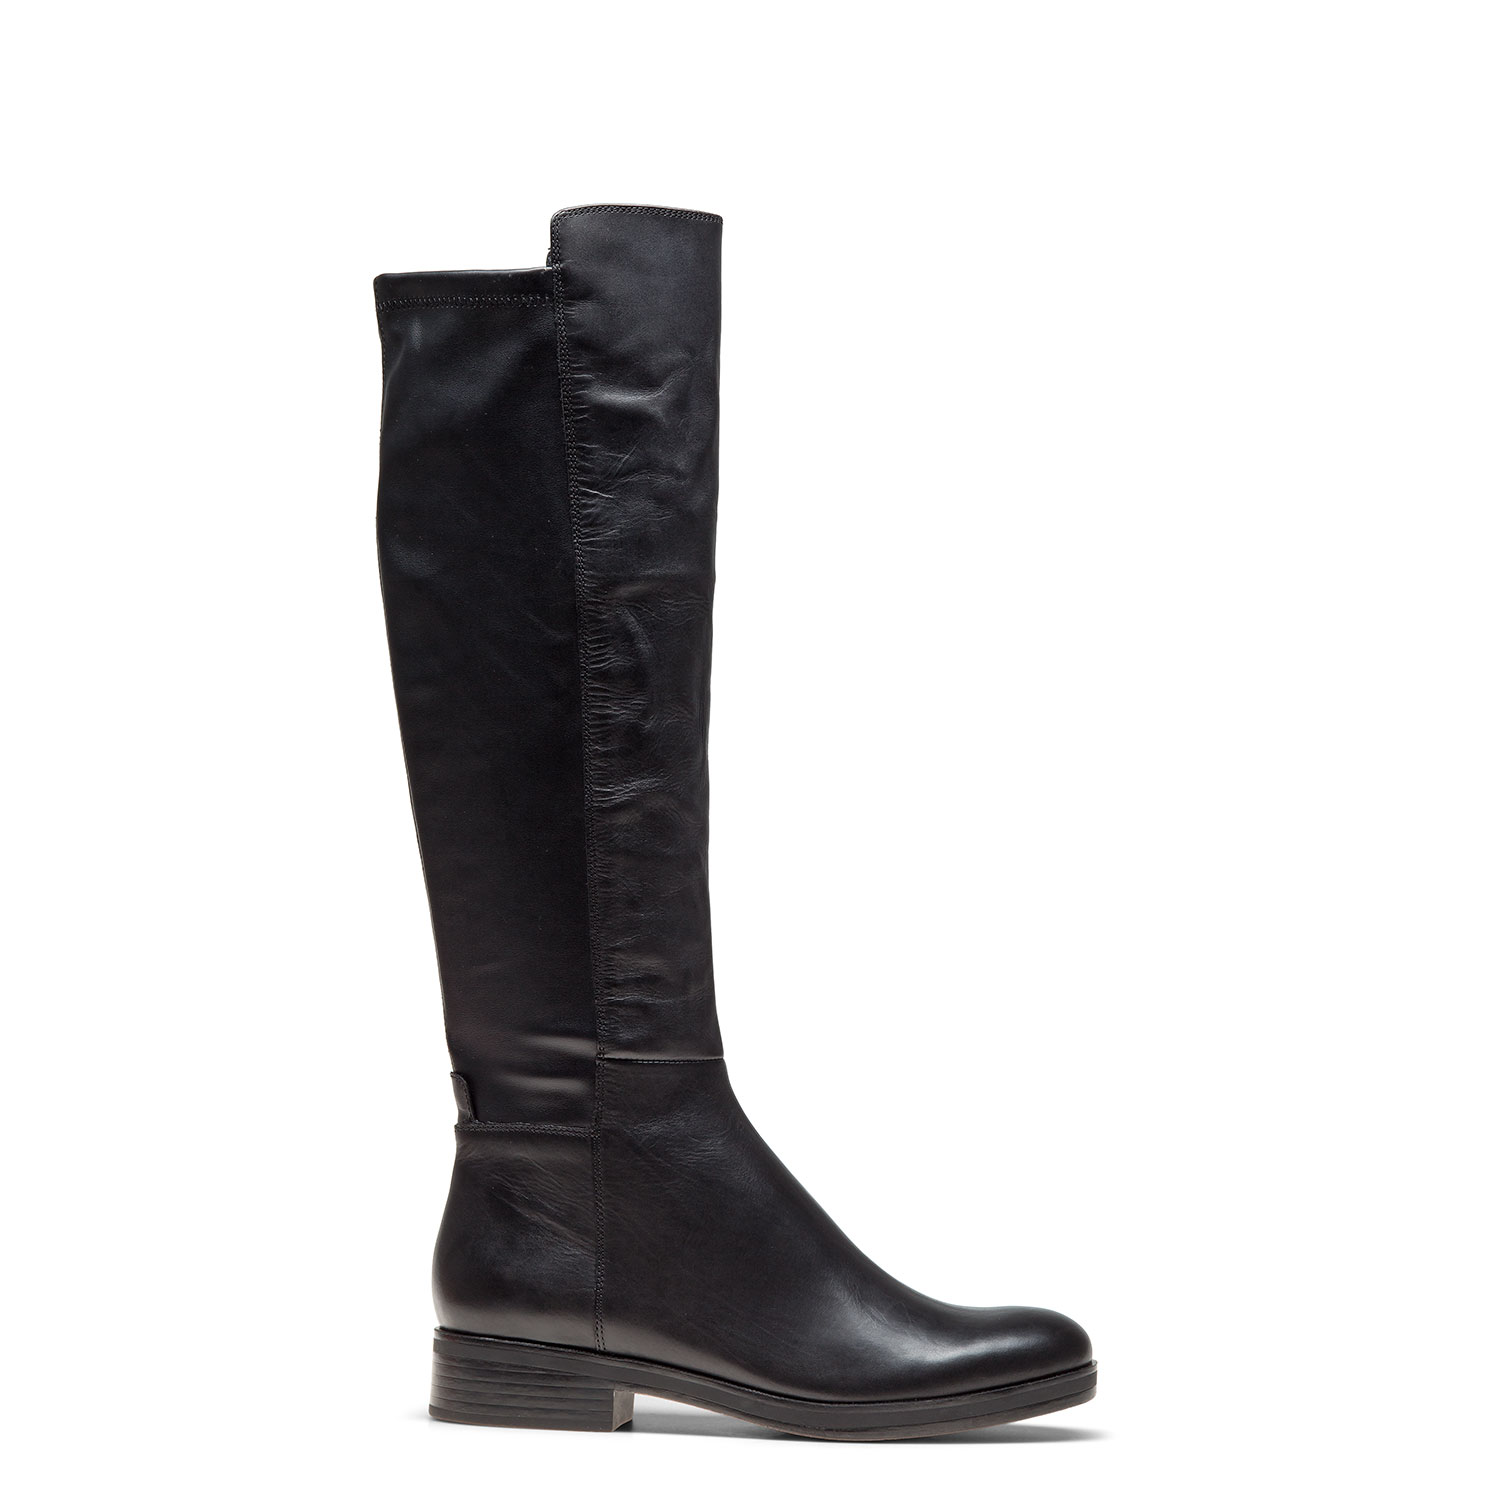 Women's high boots CARLO PAZOLINI MT-TID2-1